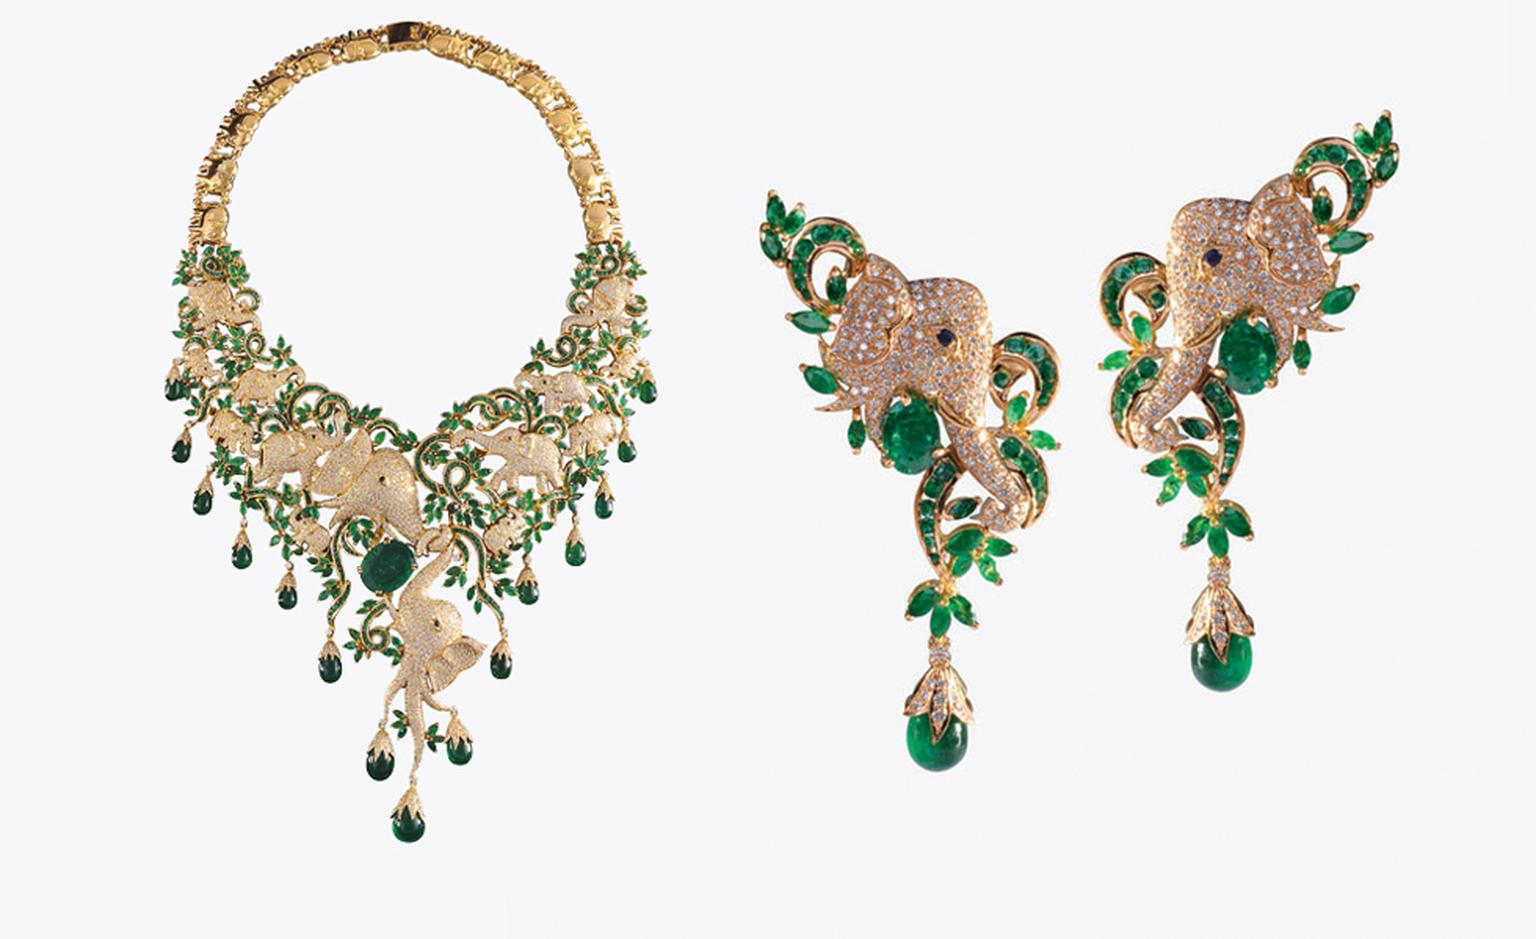 Vummidi Bangaru, Chennai. Necklace and earrings, Zambian emeralds in yellow gold. Sold as a set, price from $120,000.